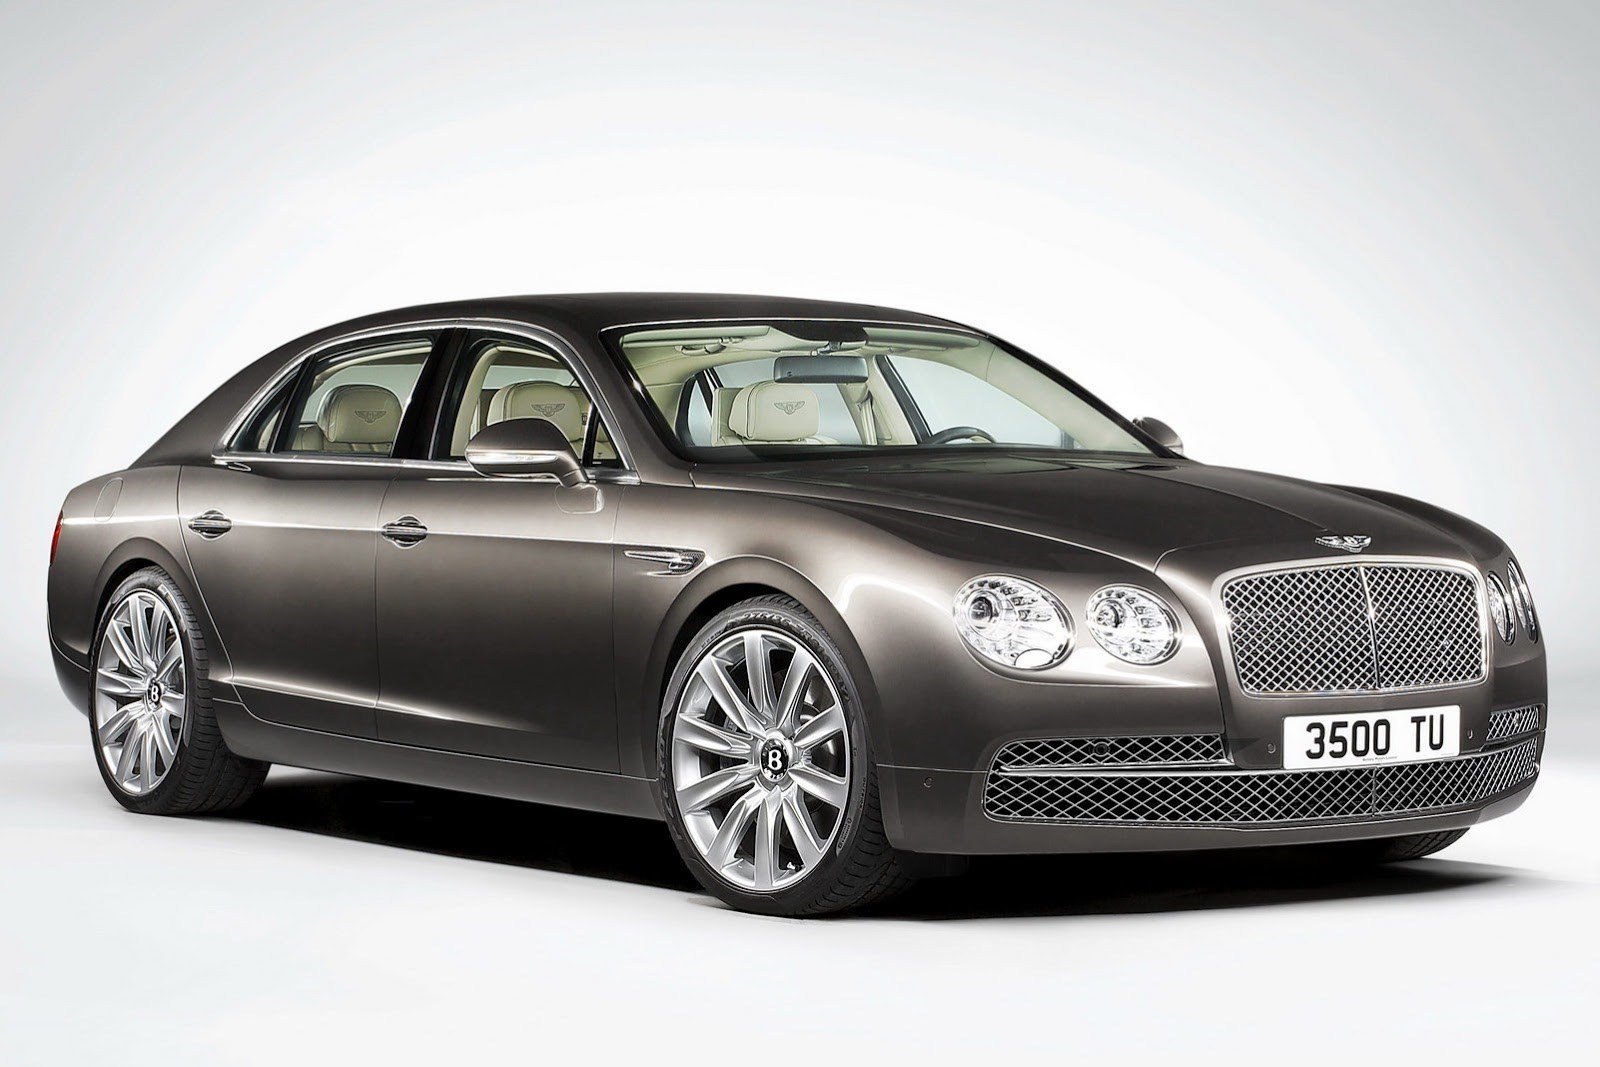 New The Wait Is Over New Bentley Flying Spur Revealed On This Month